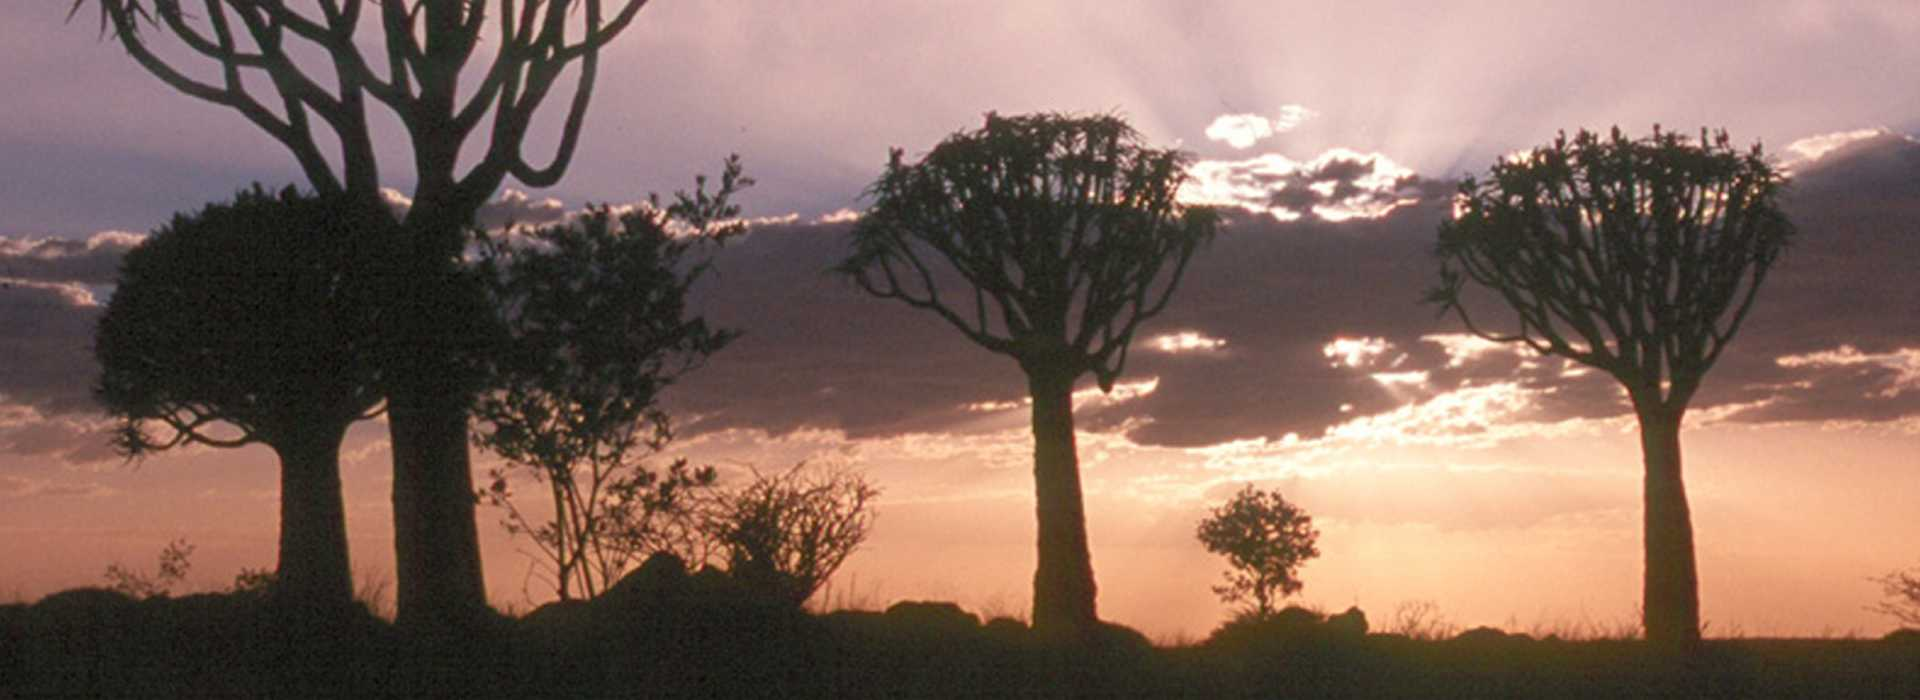 Quiver Trees At Sunset In Otavi, Namibia